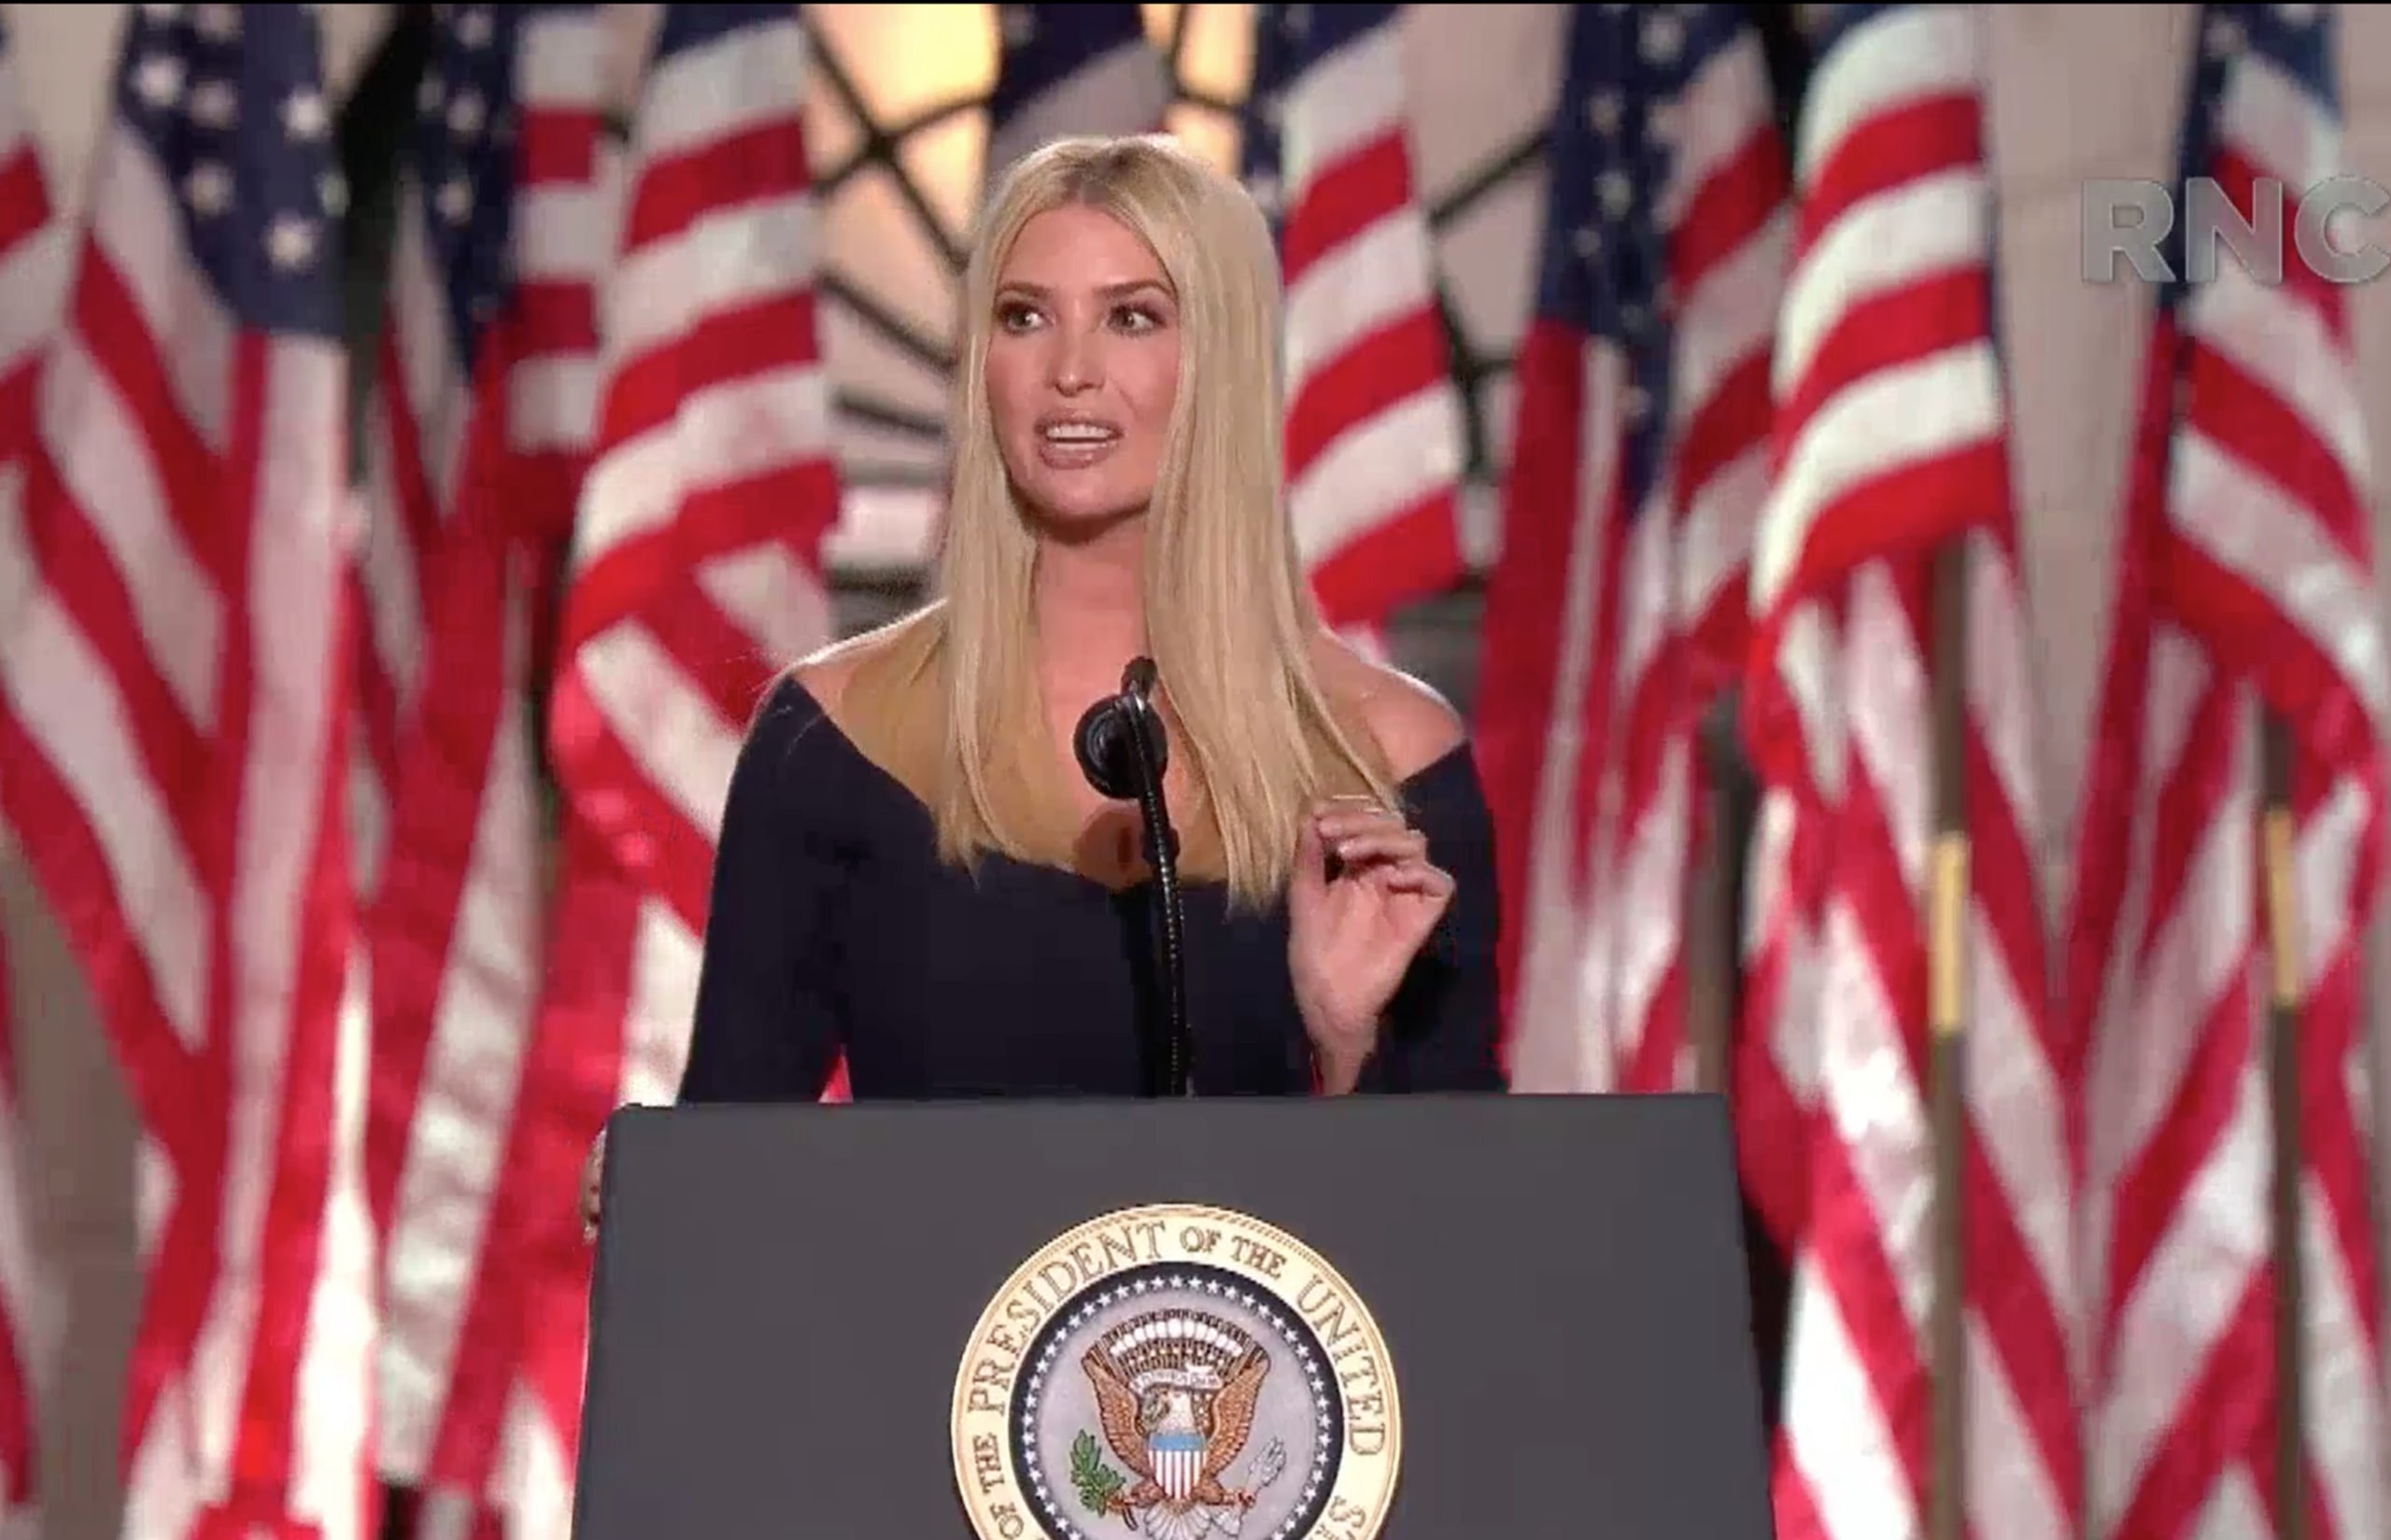 Usa 2020 - convention repubblicana - Ivanka